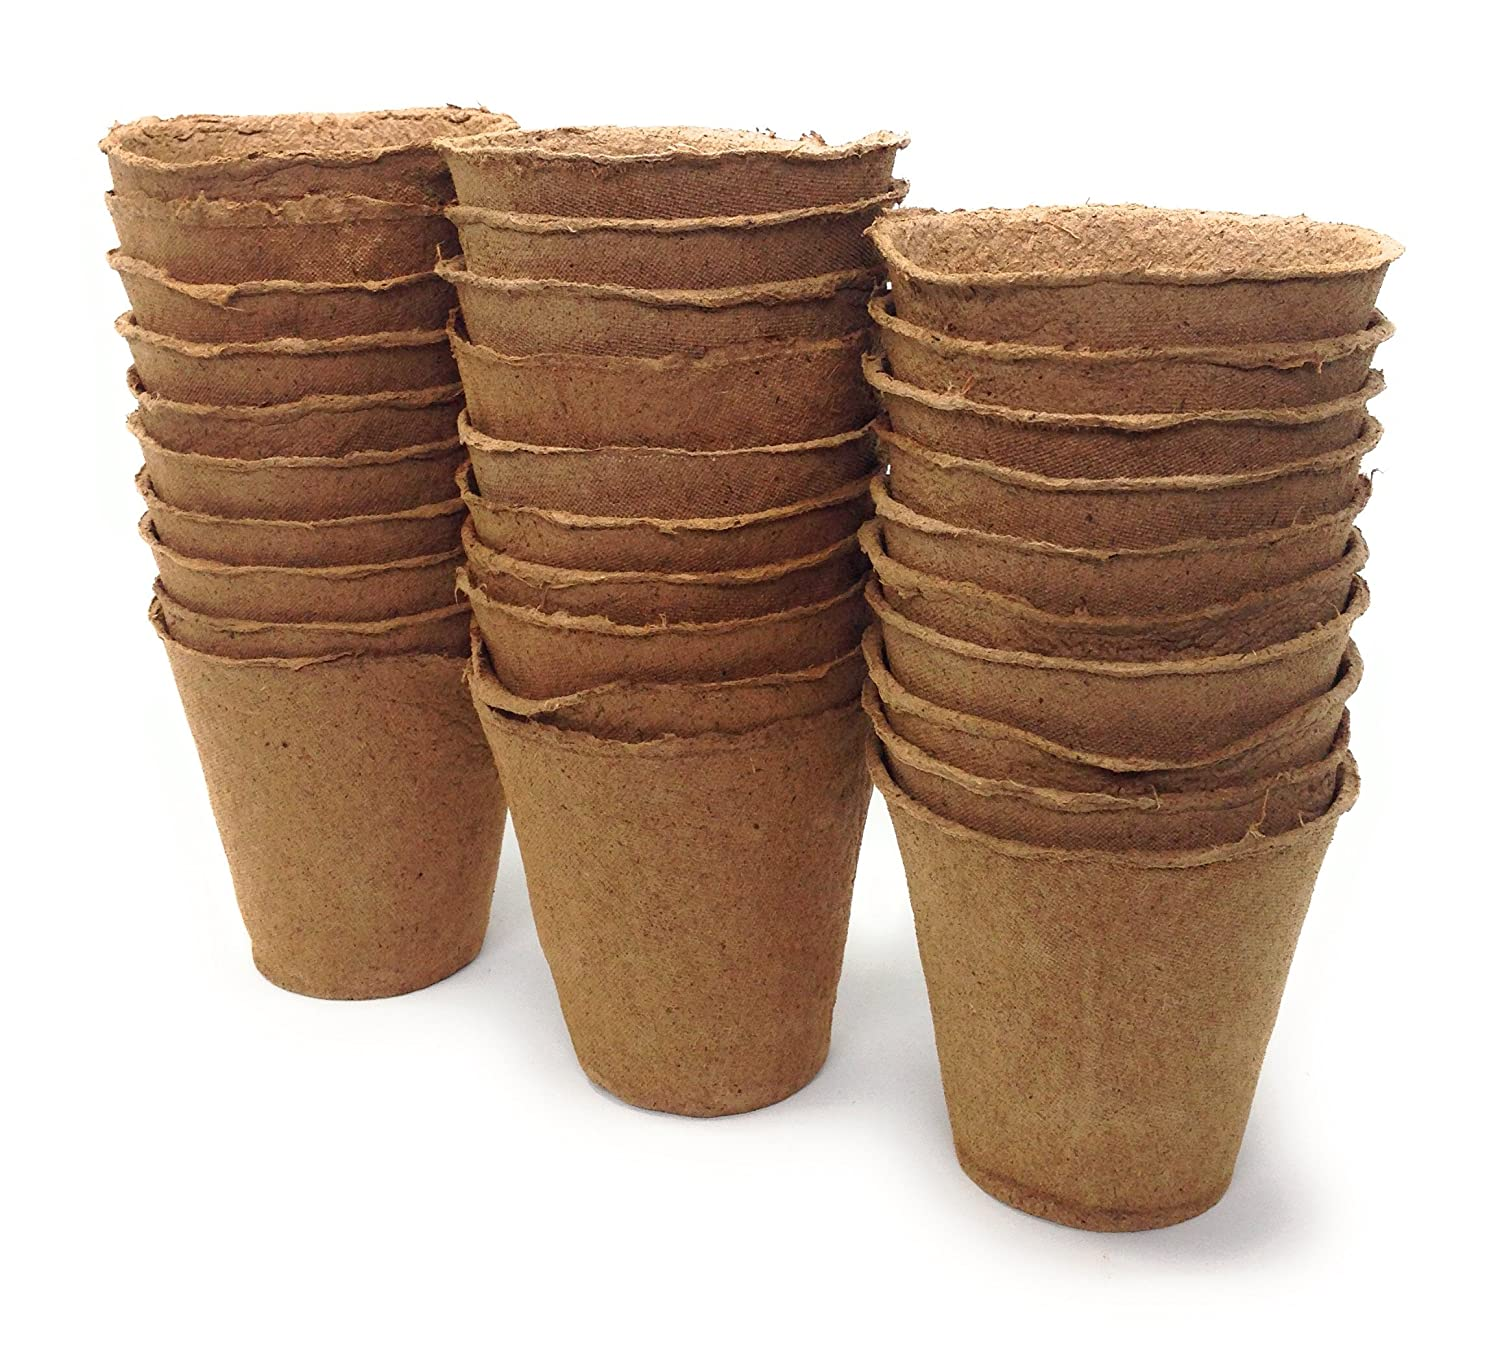 Brillante Plant Starter Peat Pots - 30 Pack of 4 Inch Pots for Your Garden, Greenhouse or Nursery